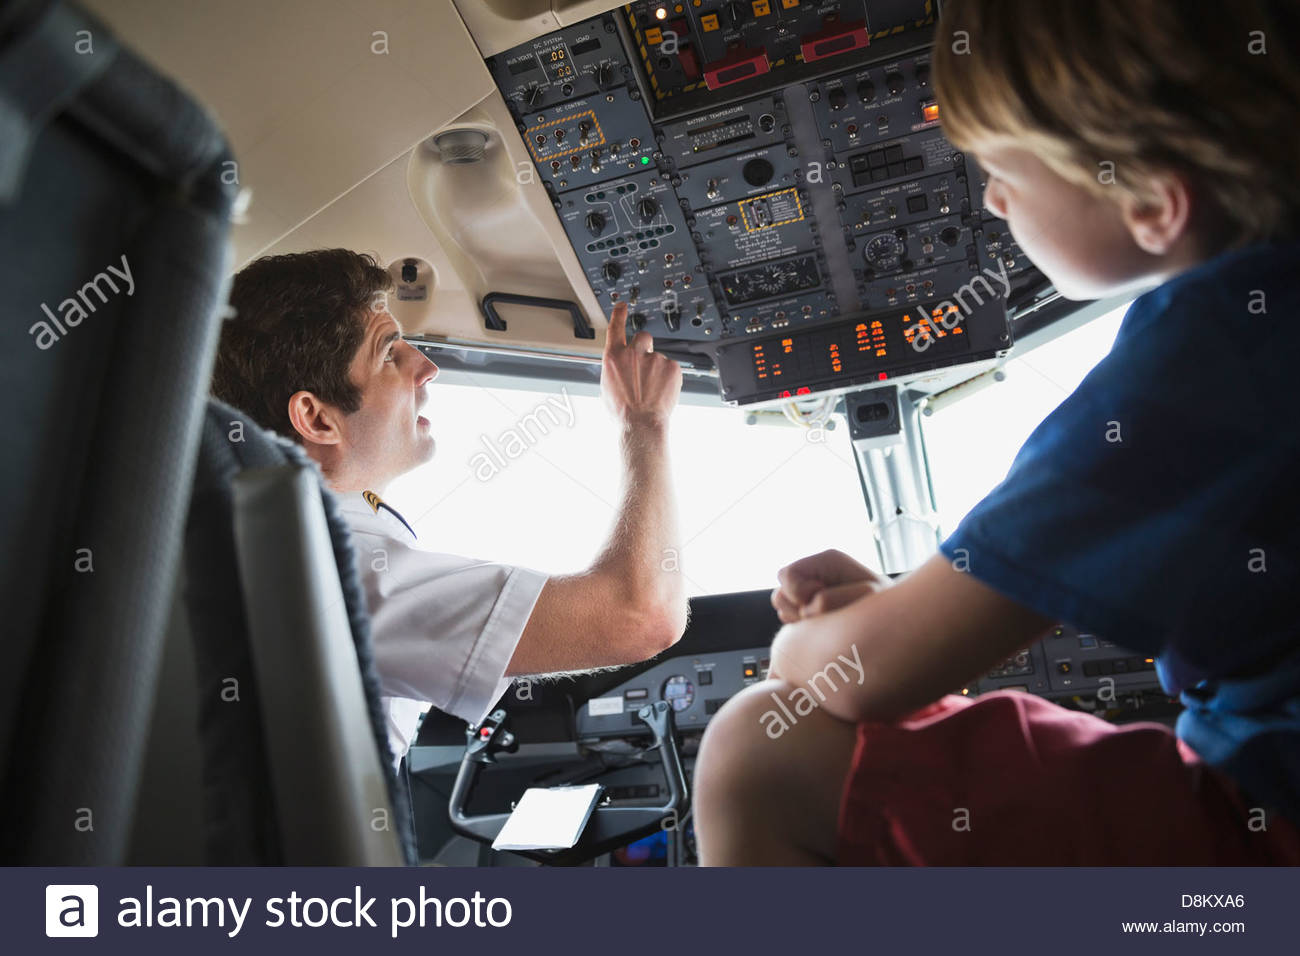 Male pilot explaining control panel to boy in airplane cockpit - Stock Image